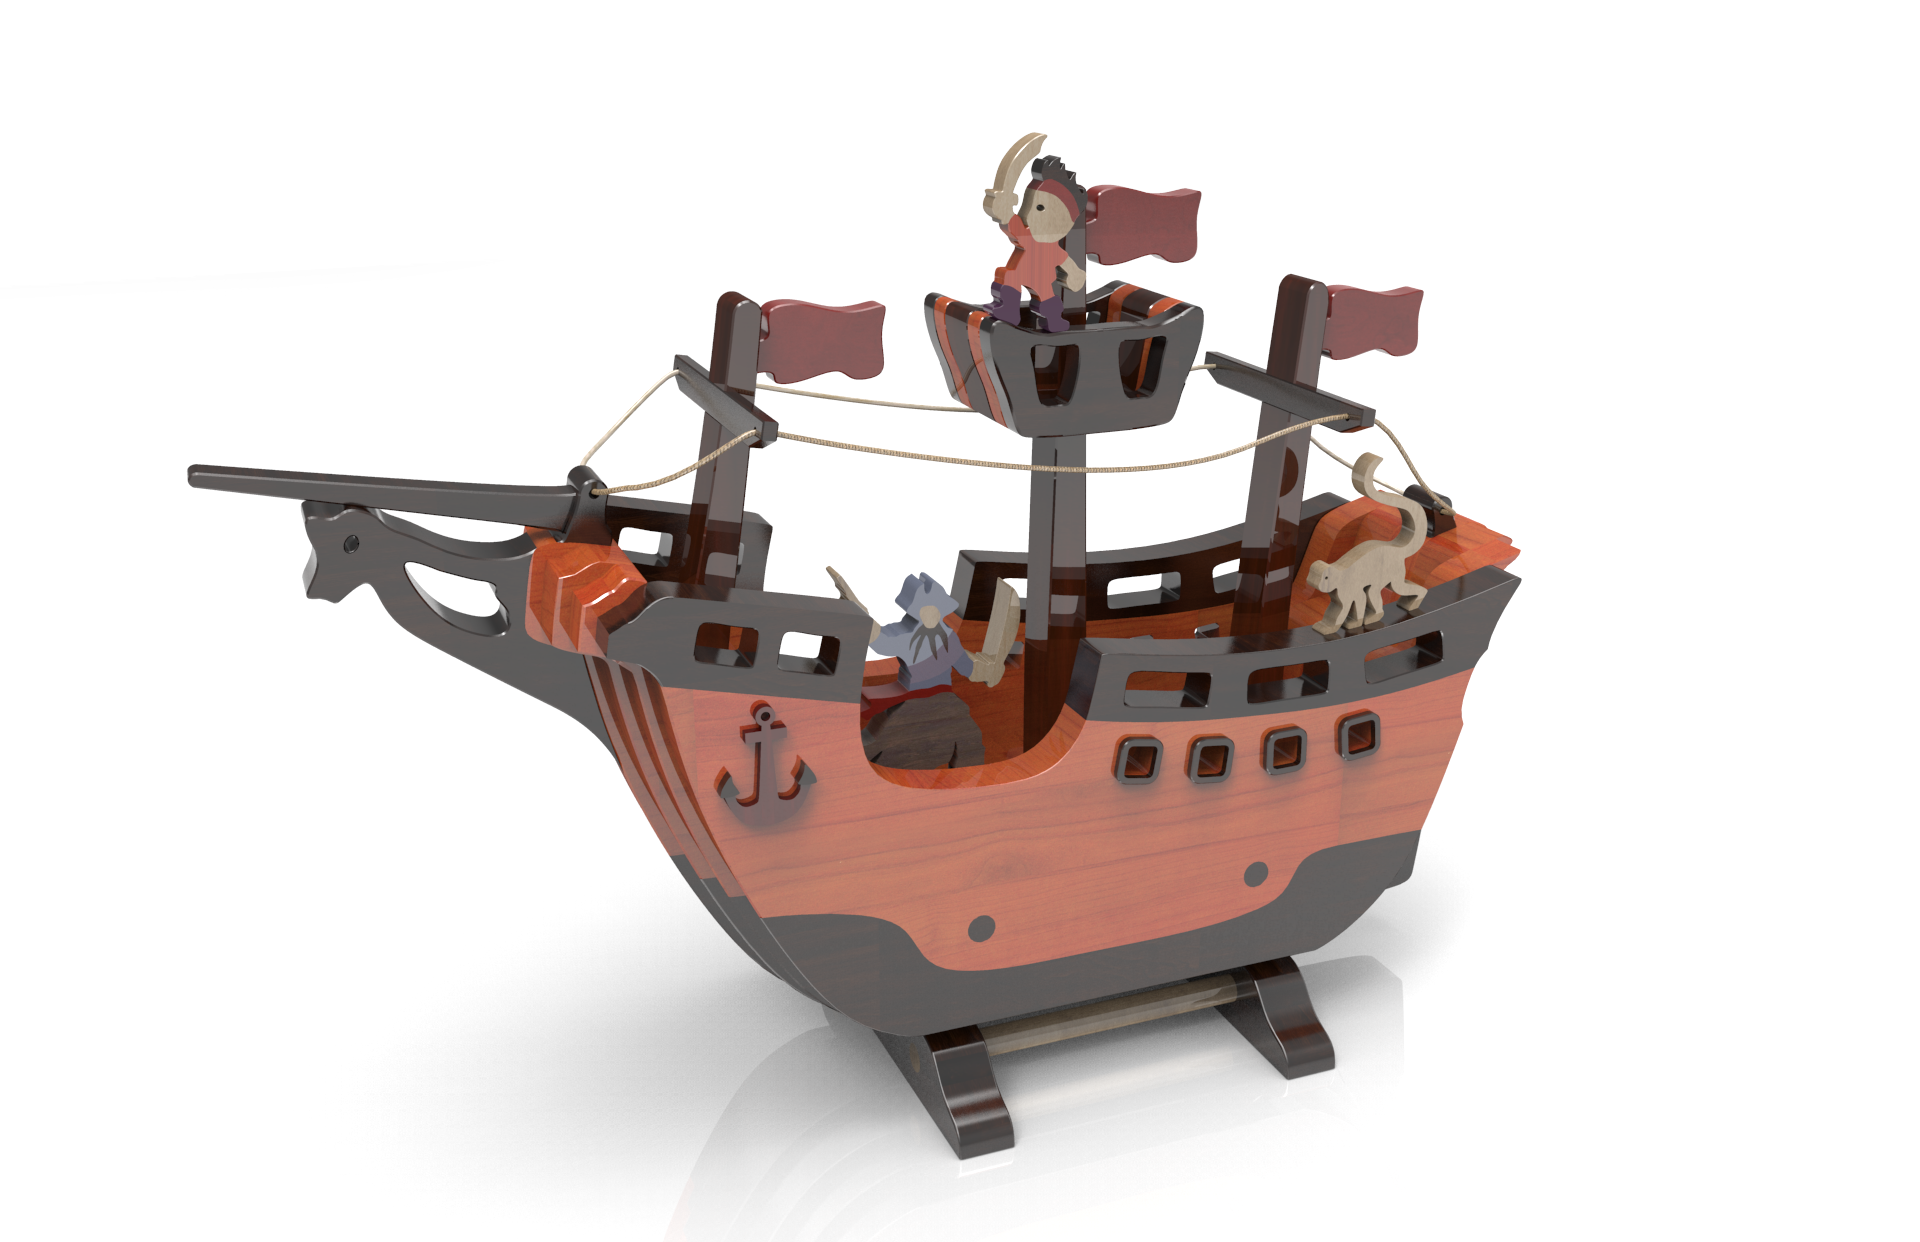 pirate ship | toys | wood toys plans, wood toys, wood projects